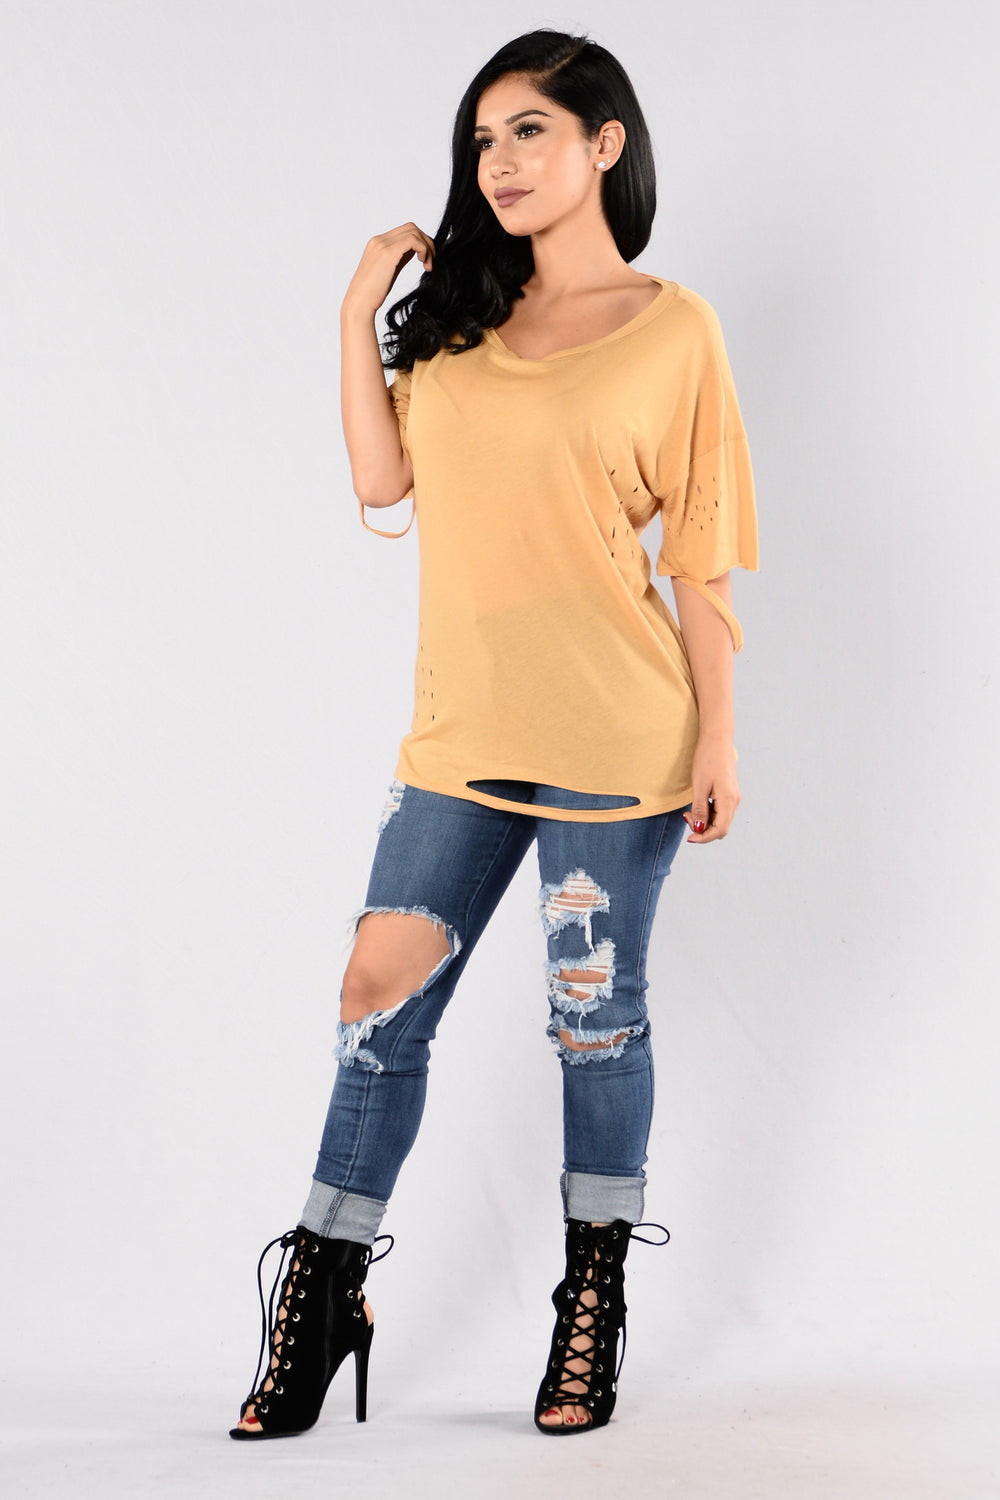 Worst Behavior Tee - Mustard